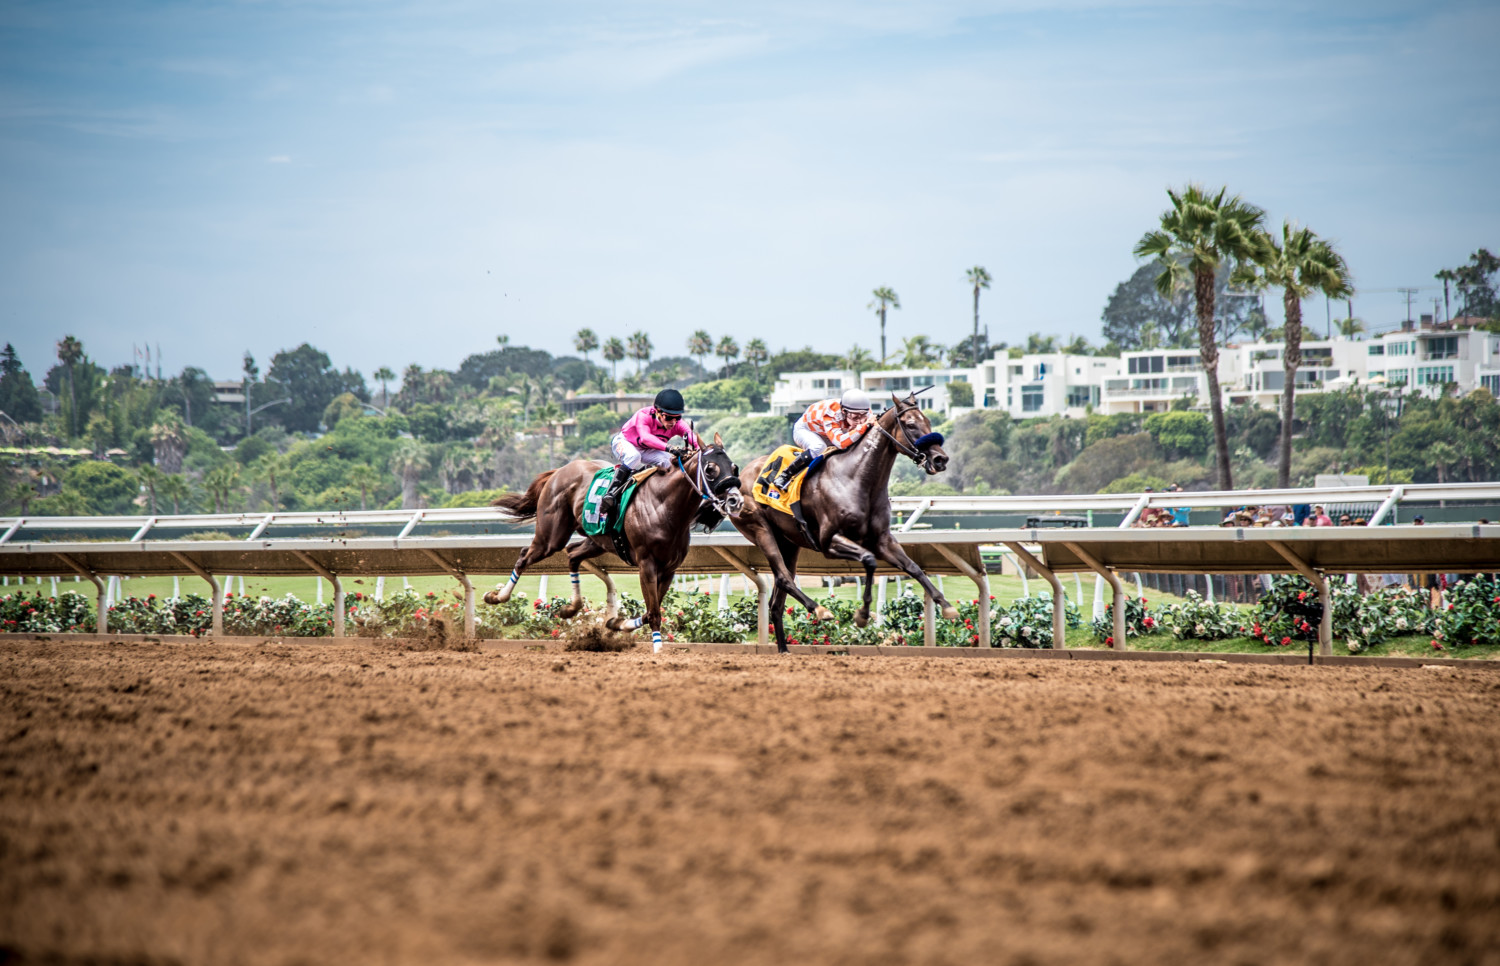 Scenes from Opening Day at Del Mar